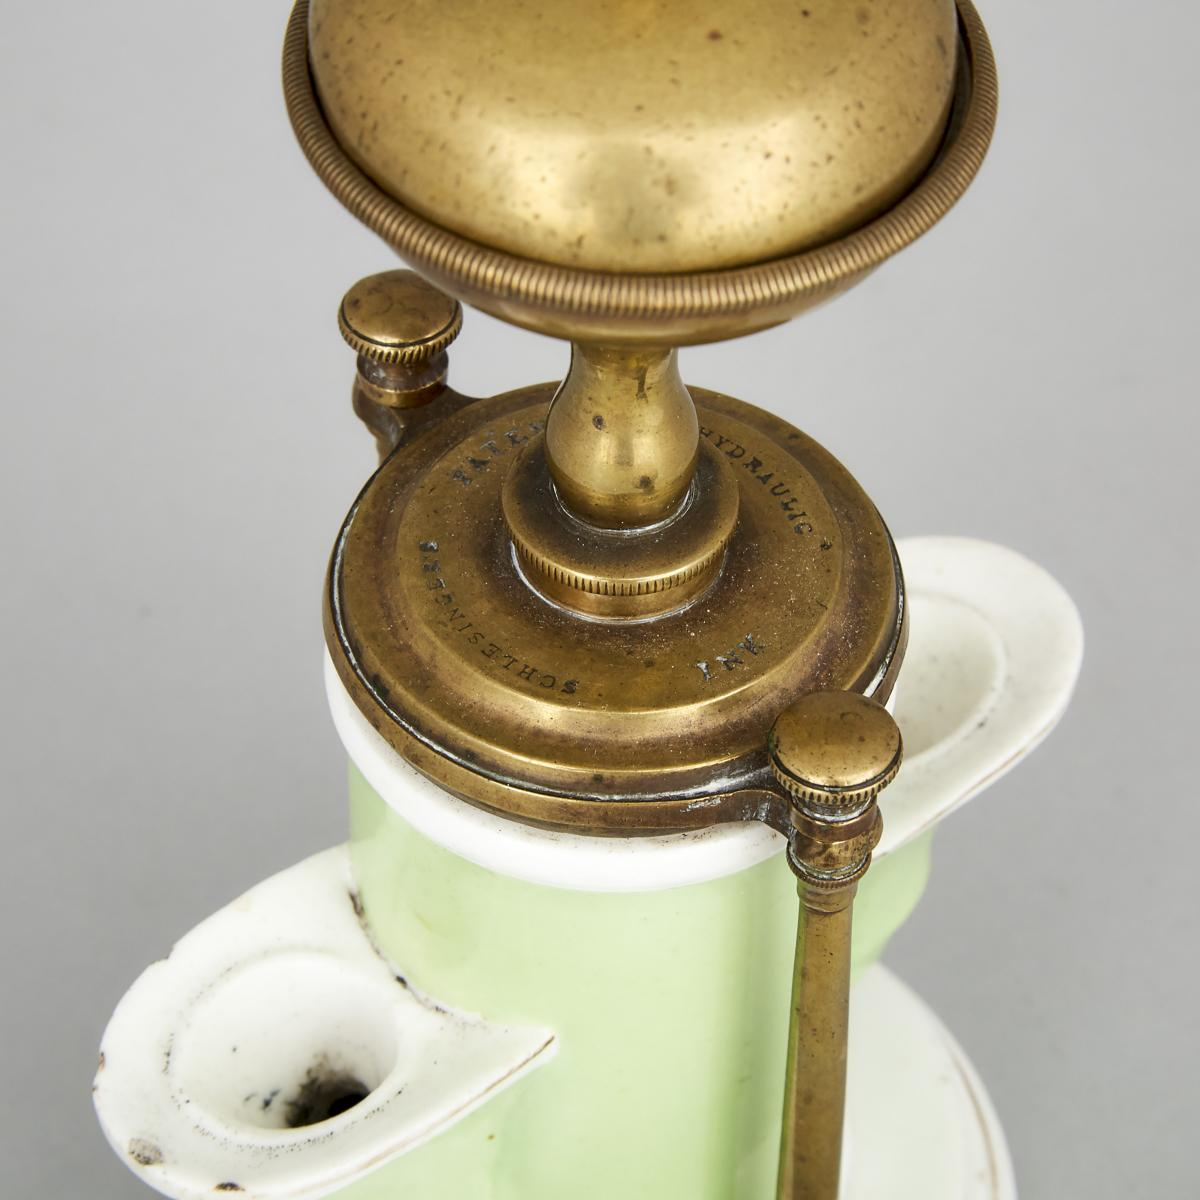 Lot 113 - Joseph Schlesinger's Patent Hydraulic Ink Pot, mid 19th century, height 9 in — 22.9 cm